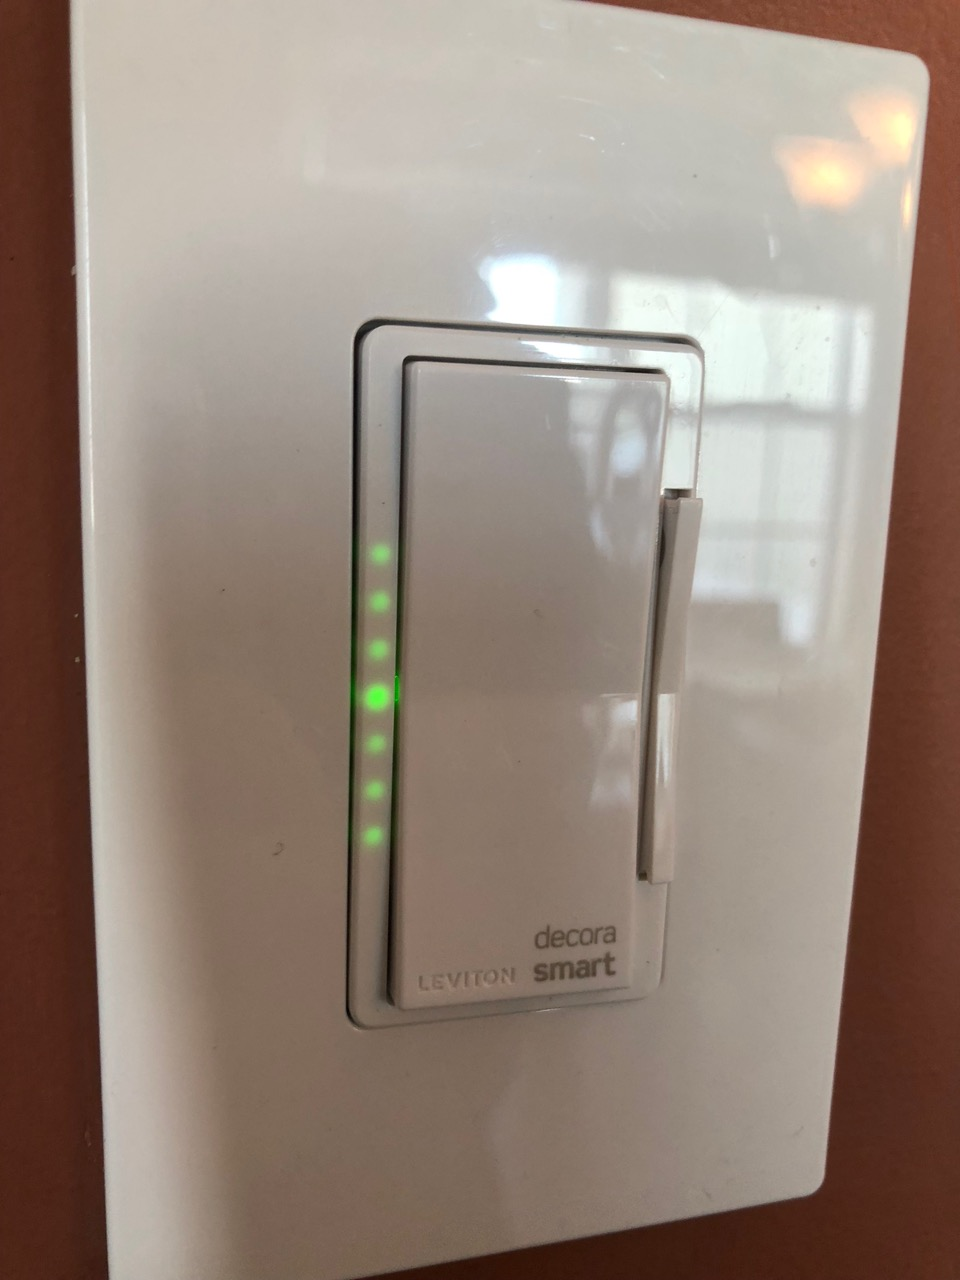 Leviton Decora Smart WiFi Dimmer Switch Review (model DW6HD-1BZ